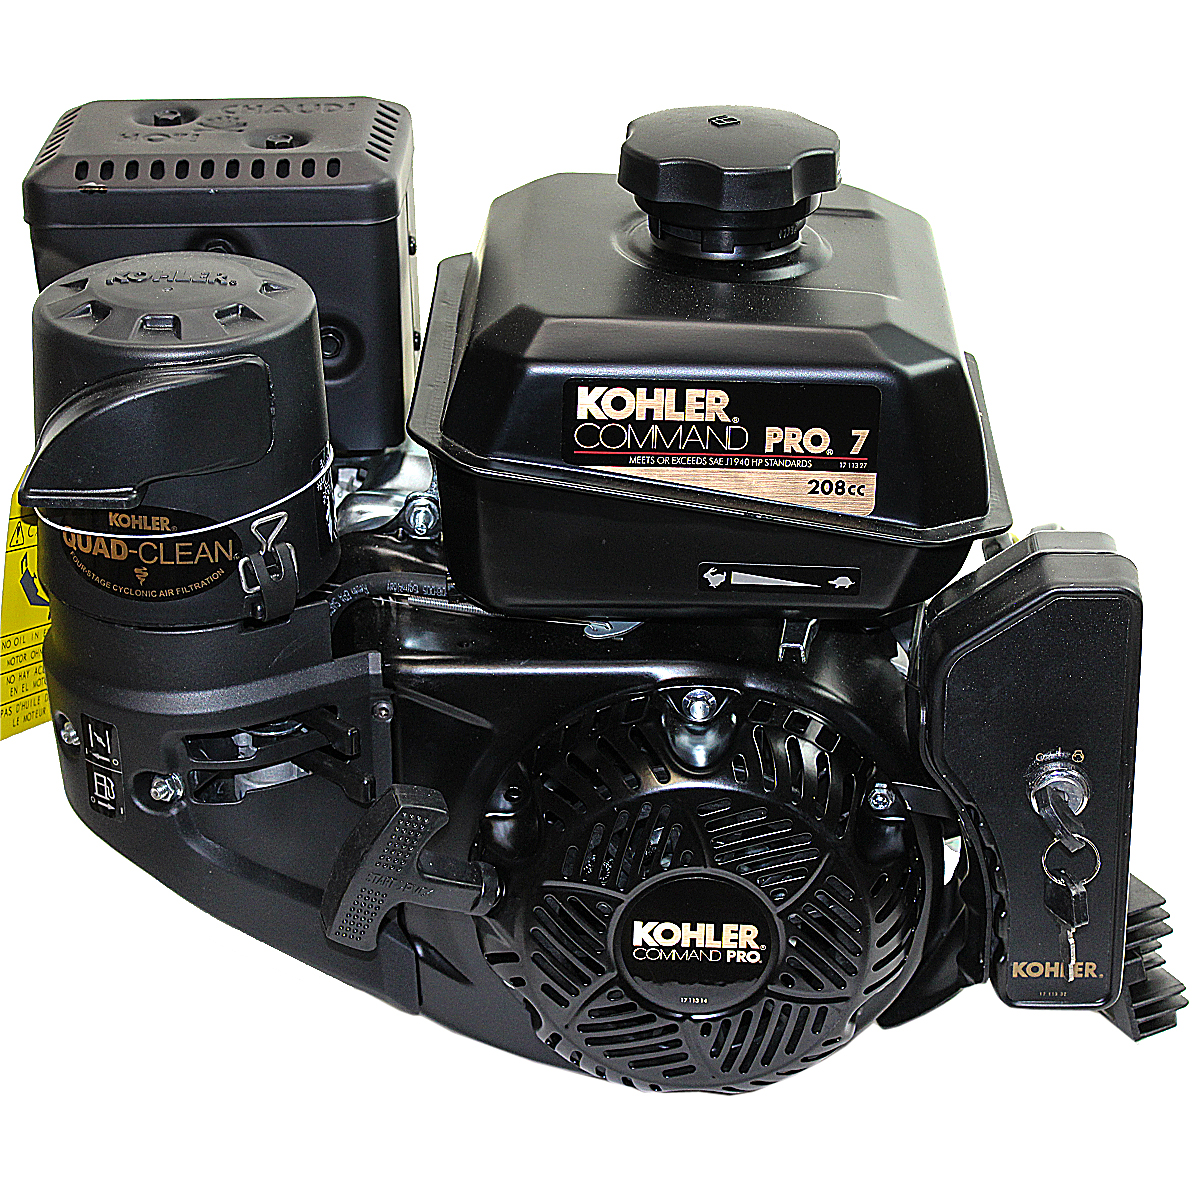 7HP Kohler Command Pro, 2:1 Wet Clutch Gear Reduction 22MM Keyed Shaft, Recoil and Electric Start, 10 Amp Alt, CIS, OHV, Fuel Tank, Muffler, Kohler Engine